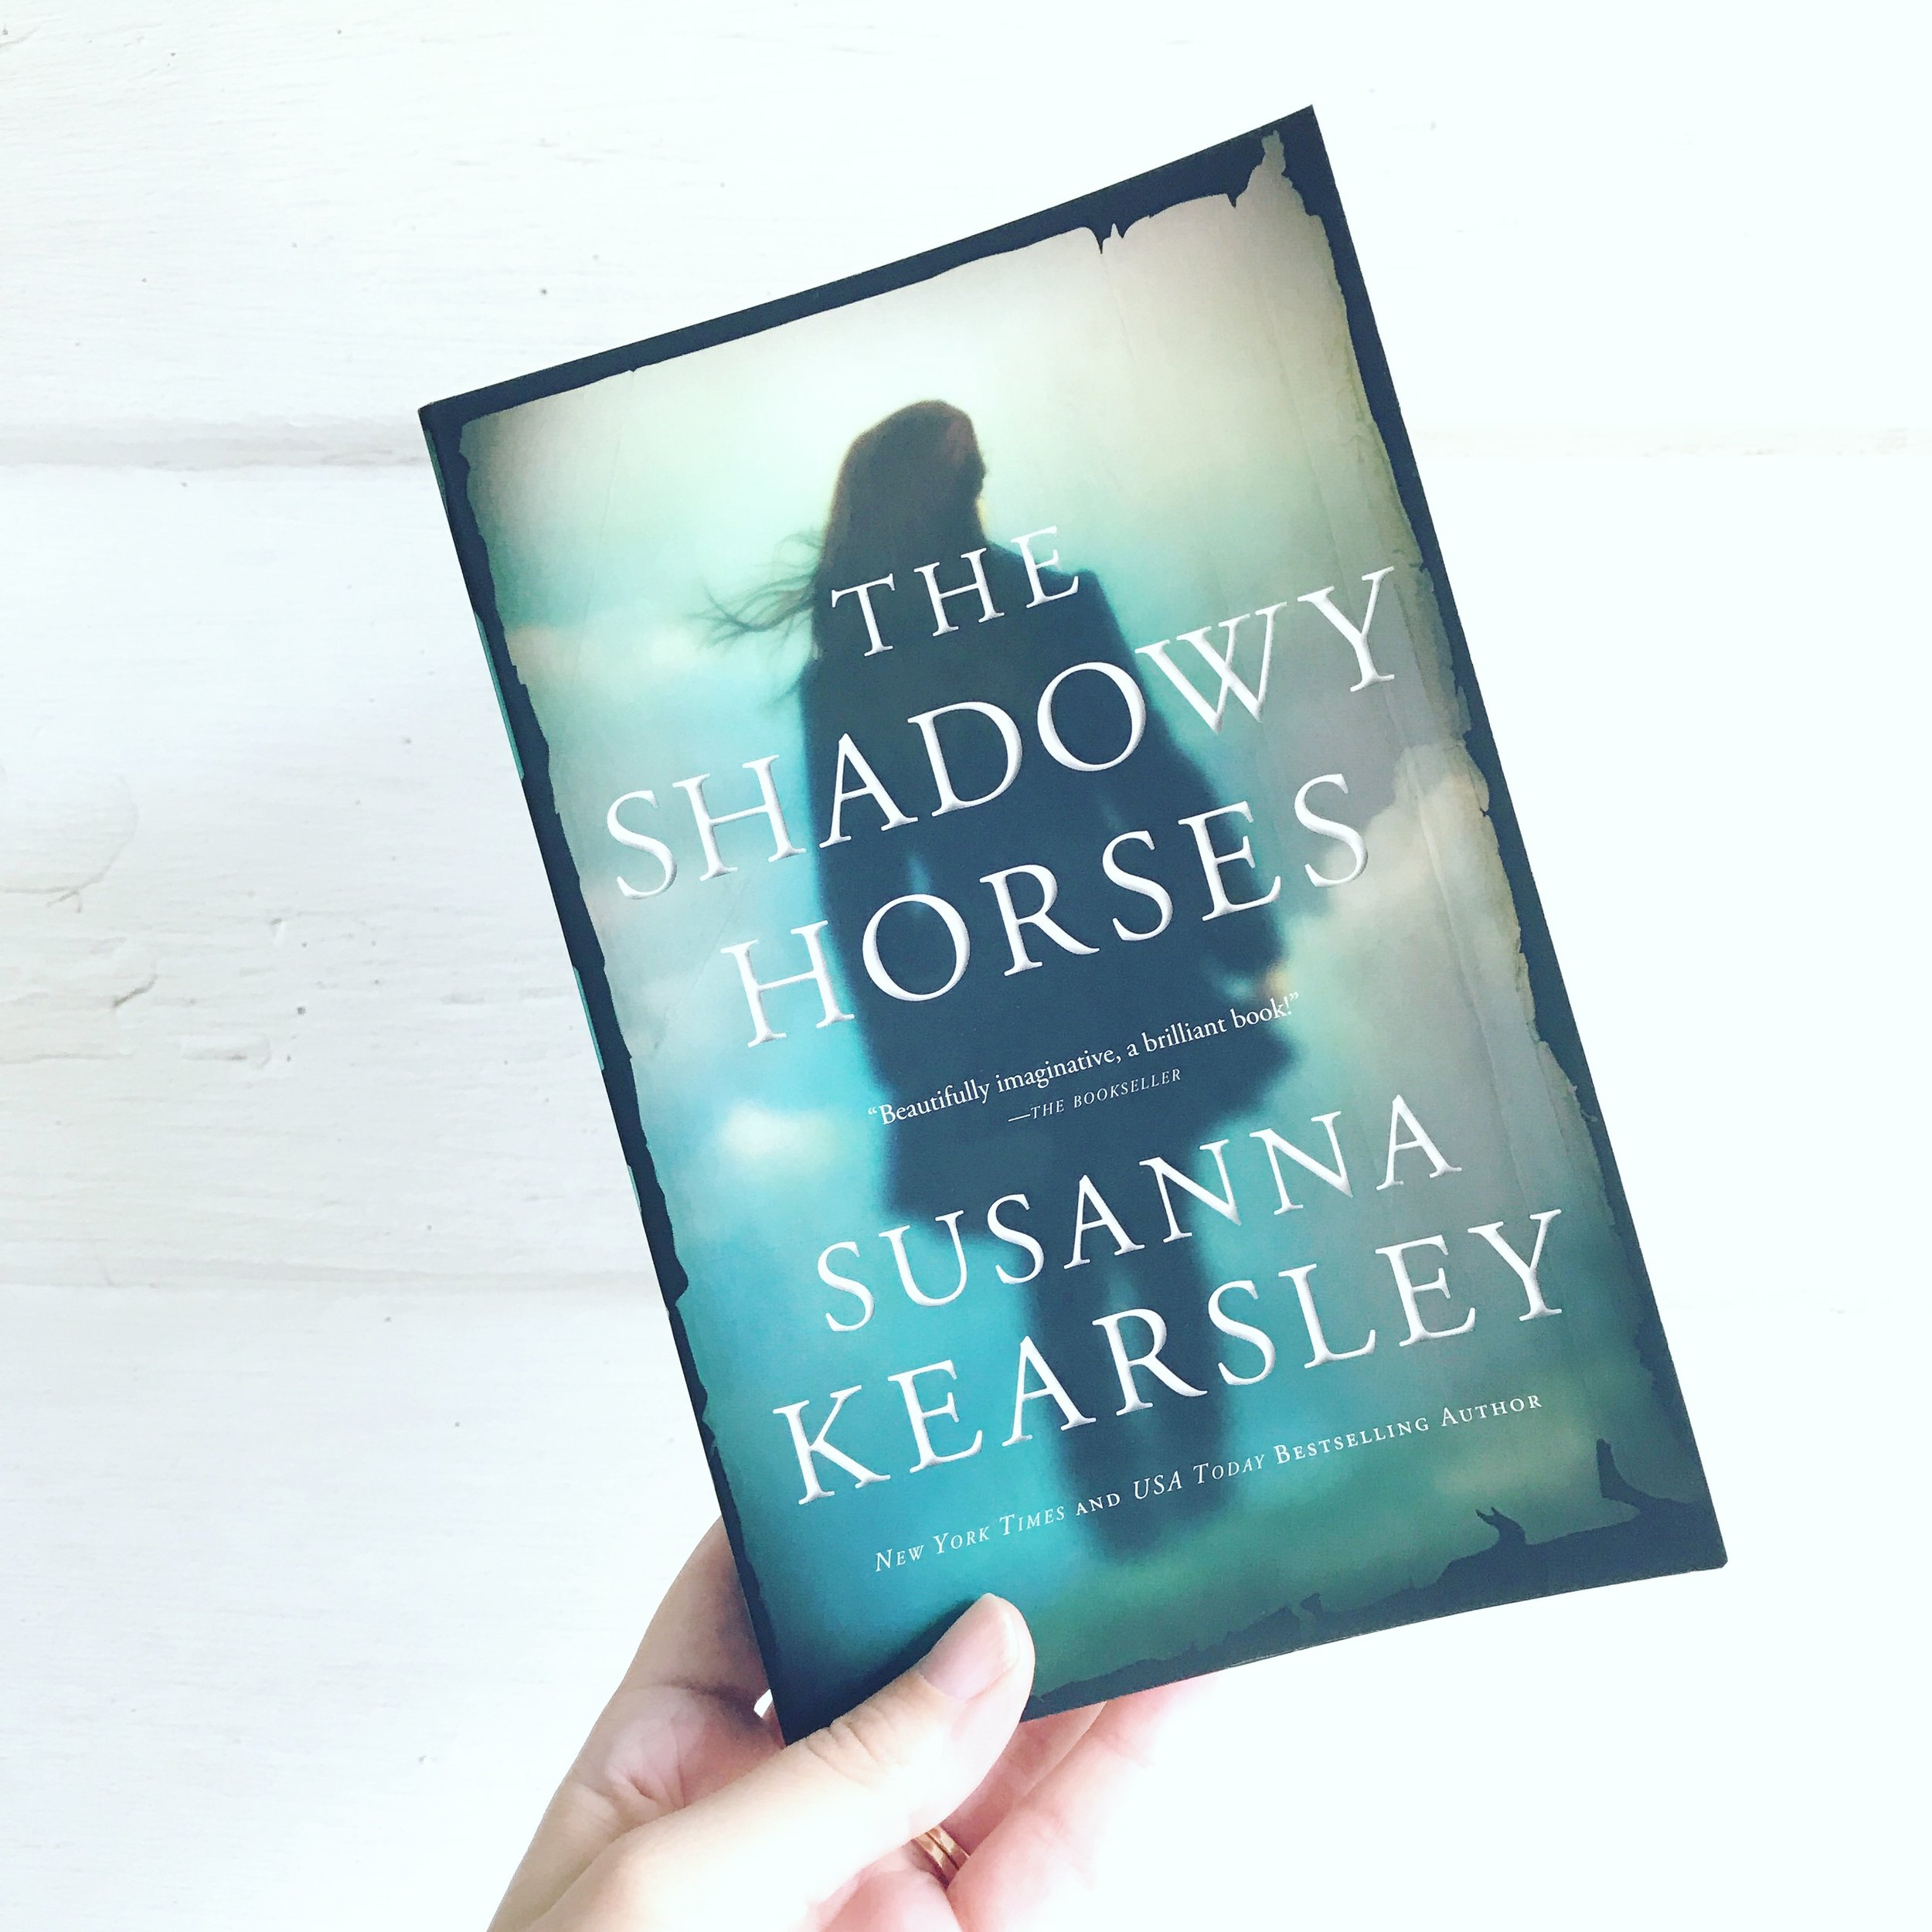 the shadowy horses book review